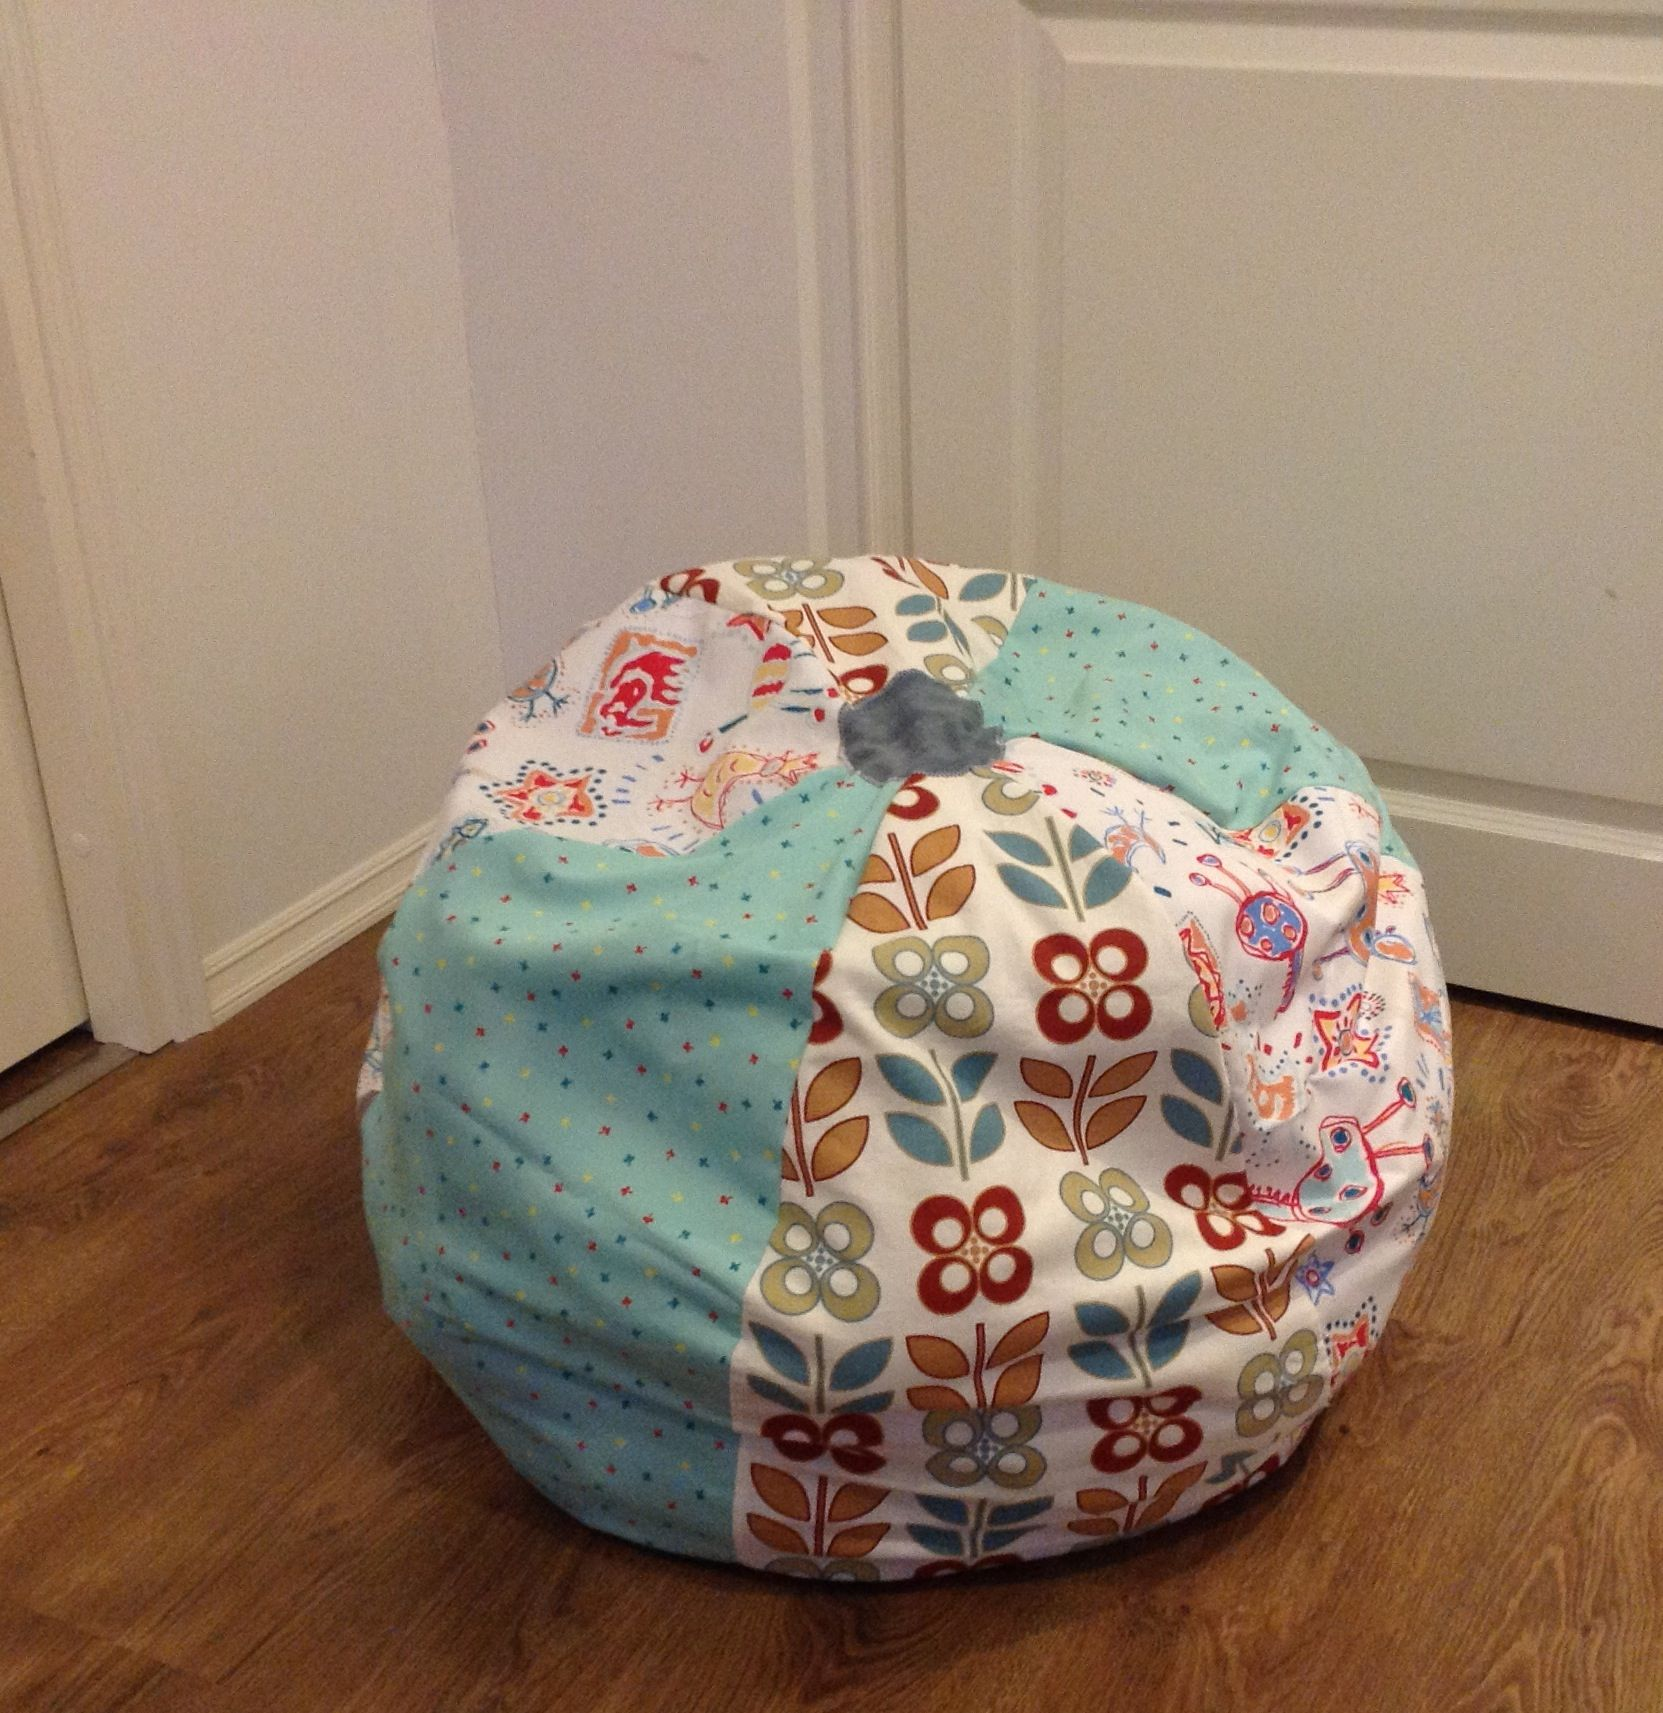 diy stuffed animal storage with a zipper e g bean bag chair by leenah leenah 39 s own sewing. Black Bedroom Furniture Sets. Home Design Ideas